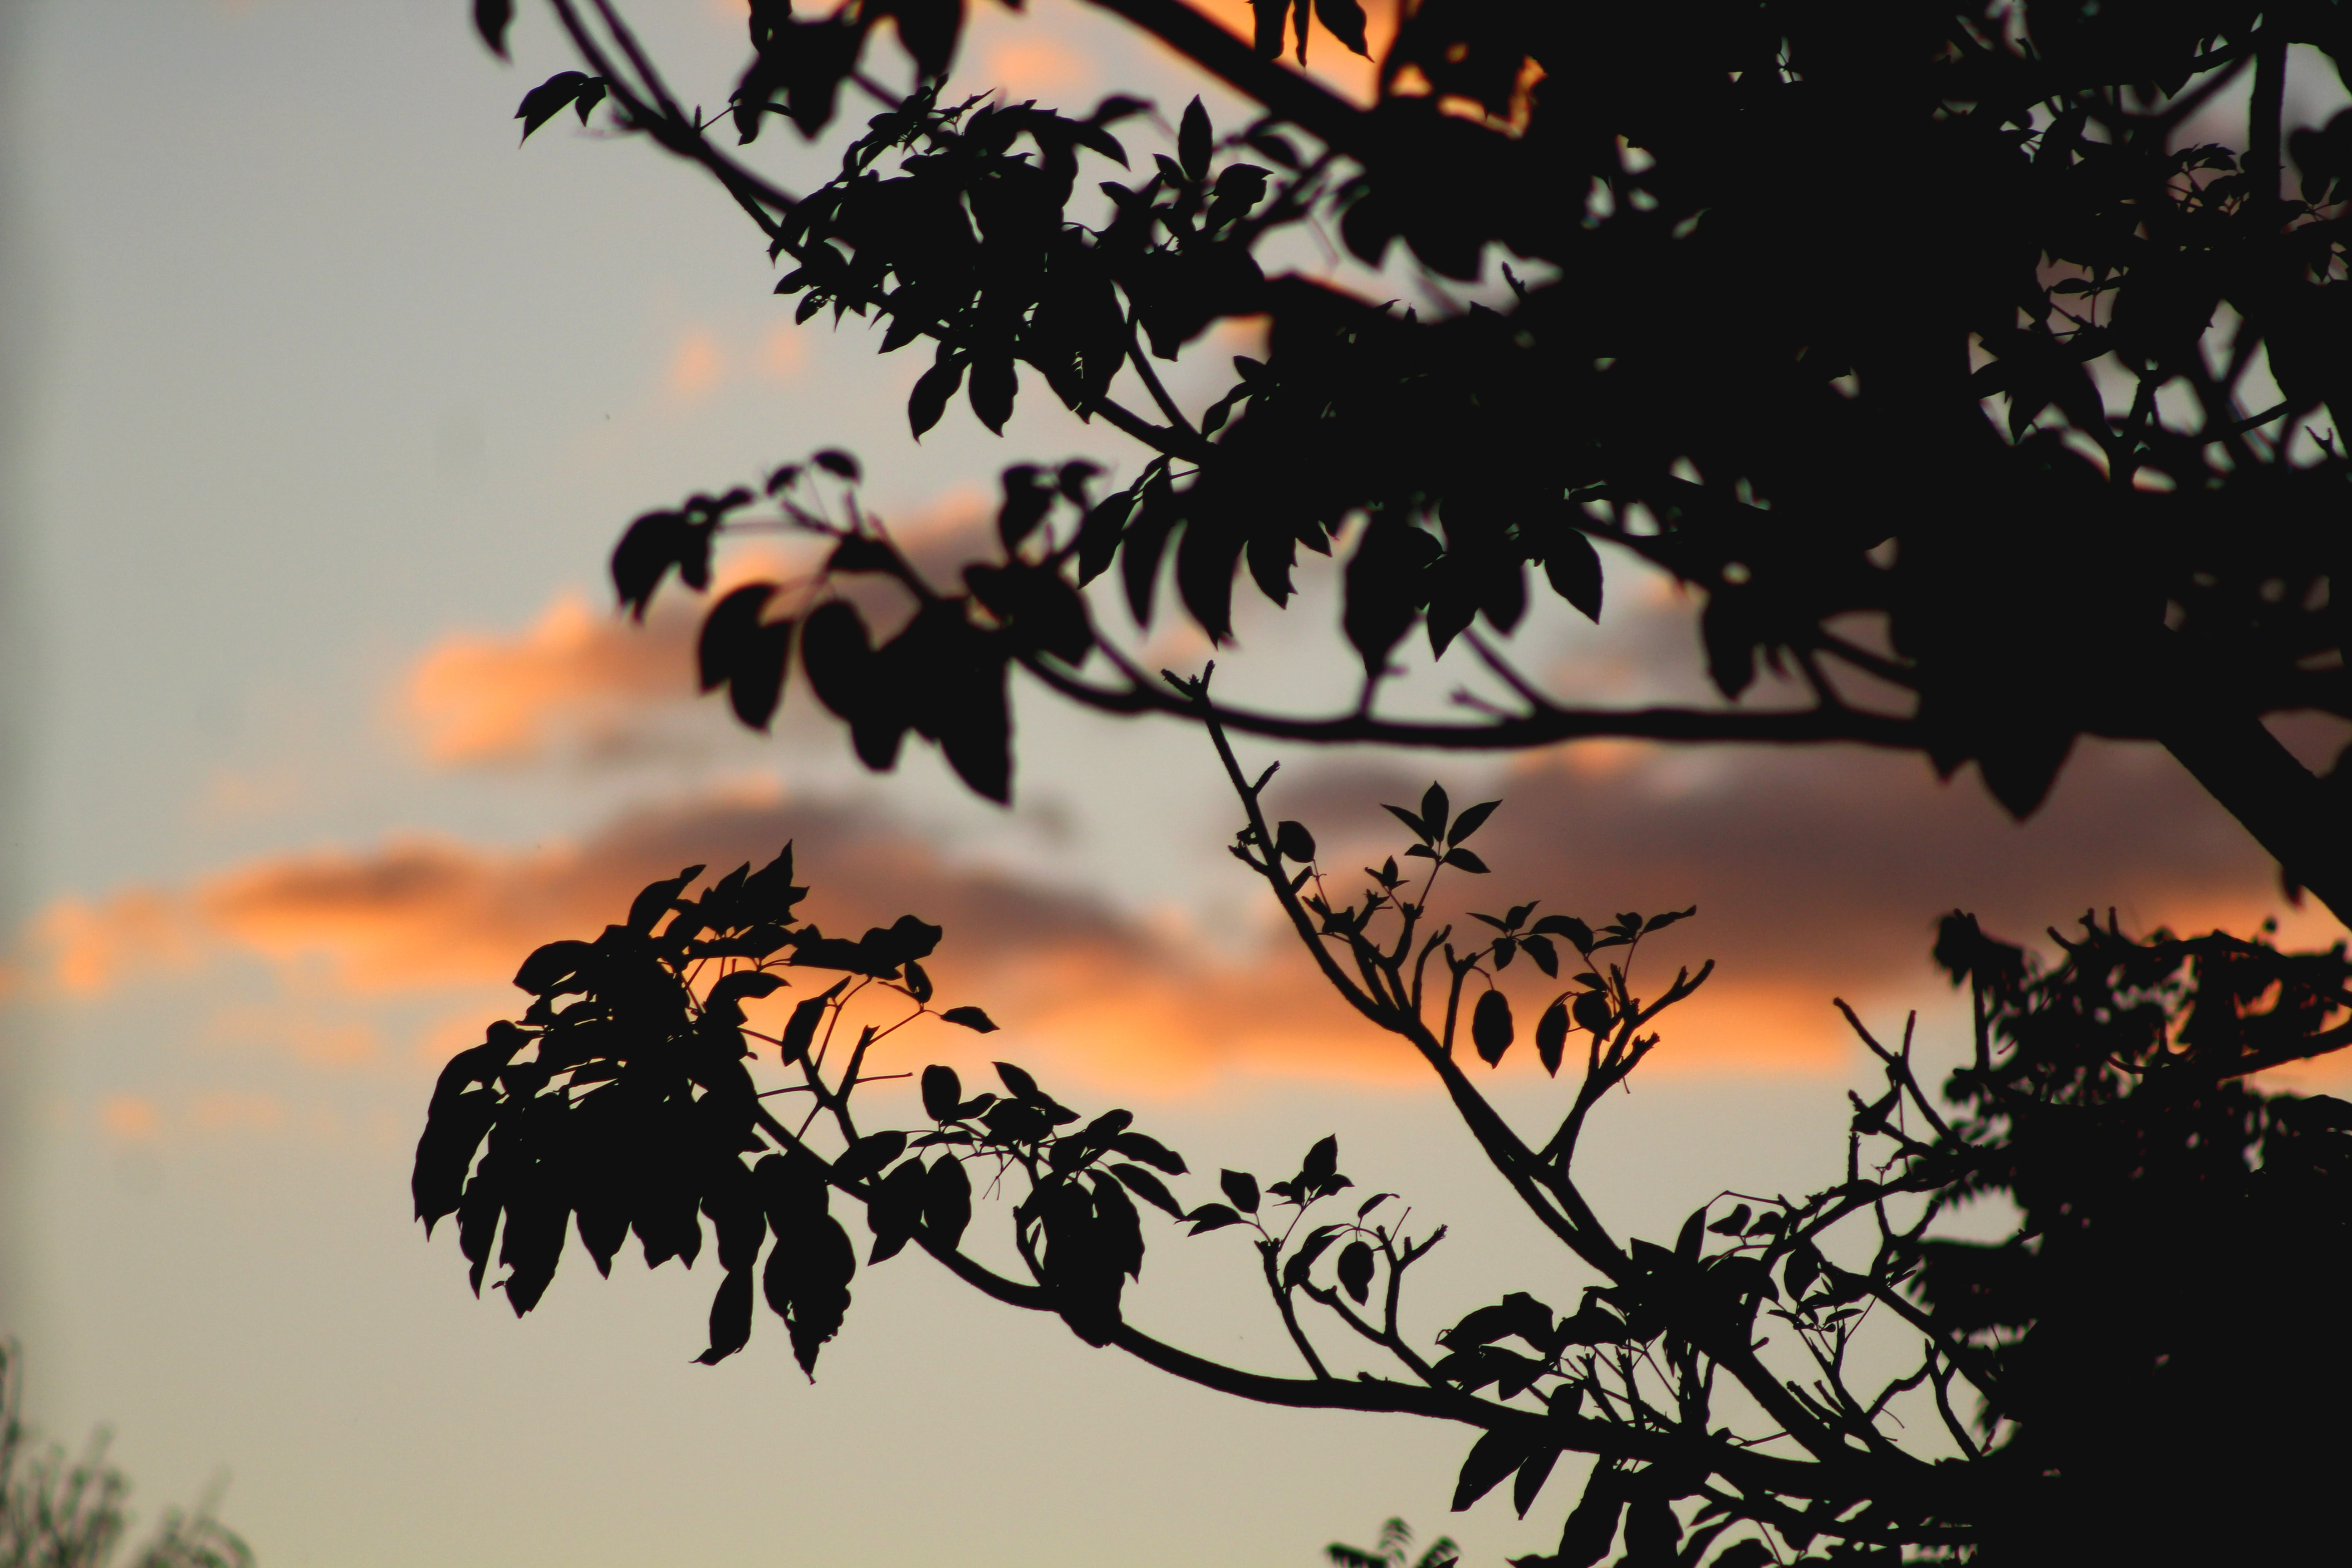 Silhouette of tree branches covering the sunset sky and evening clouds